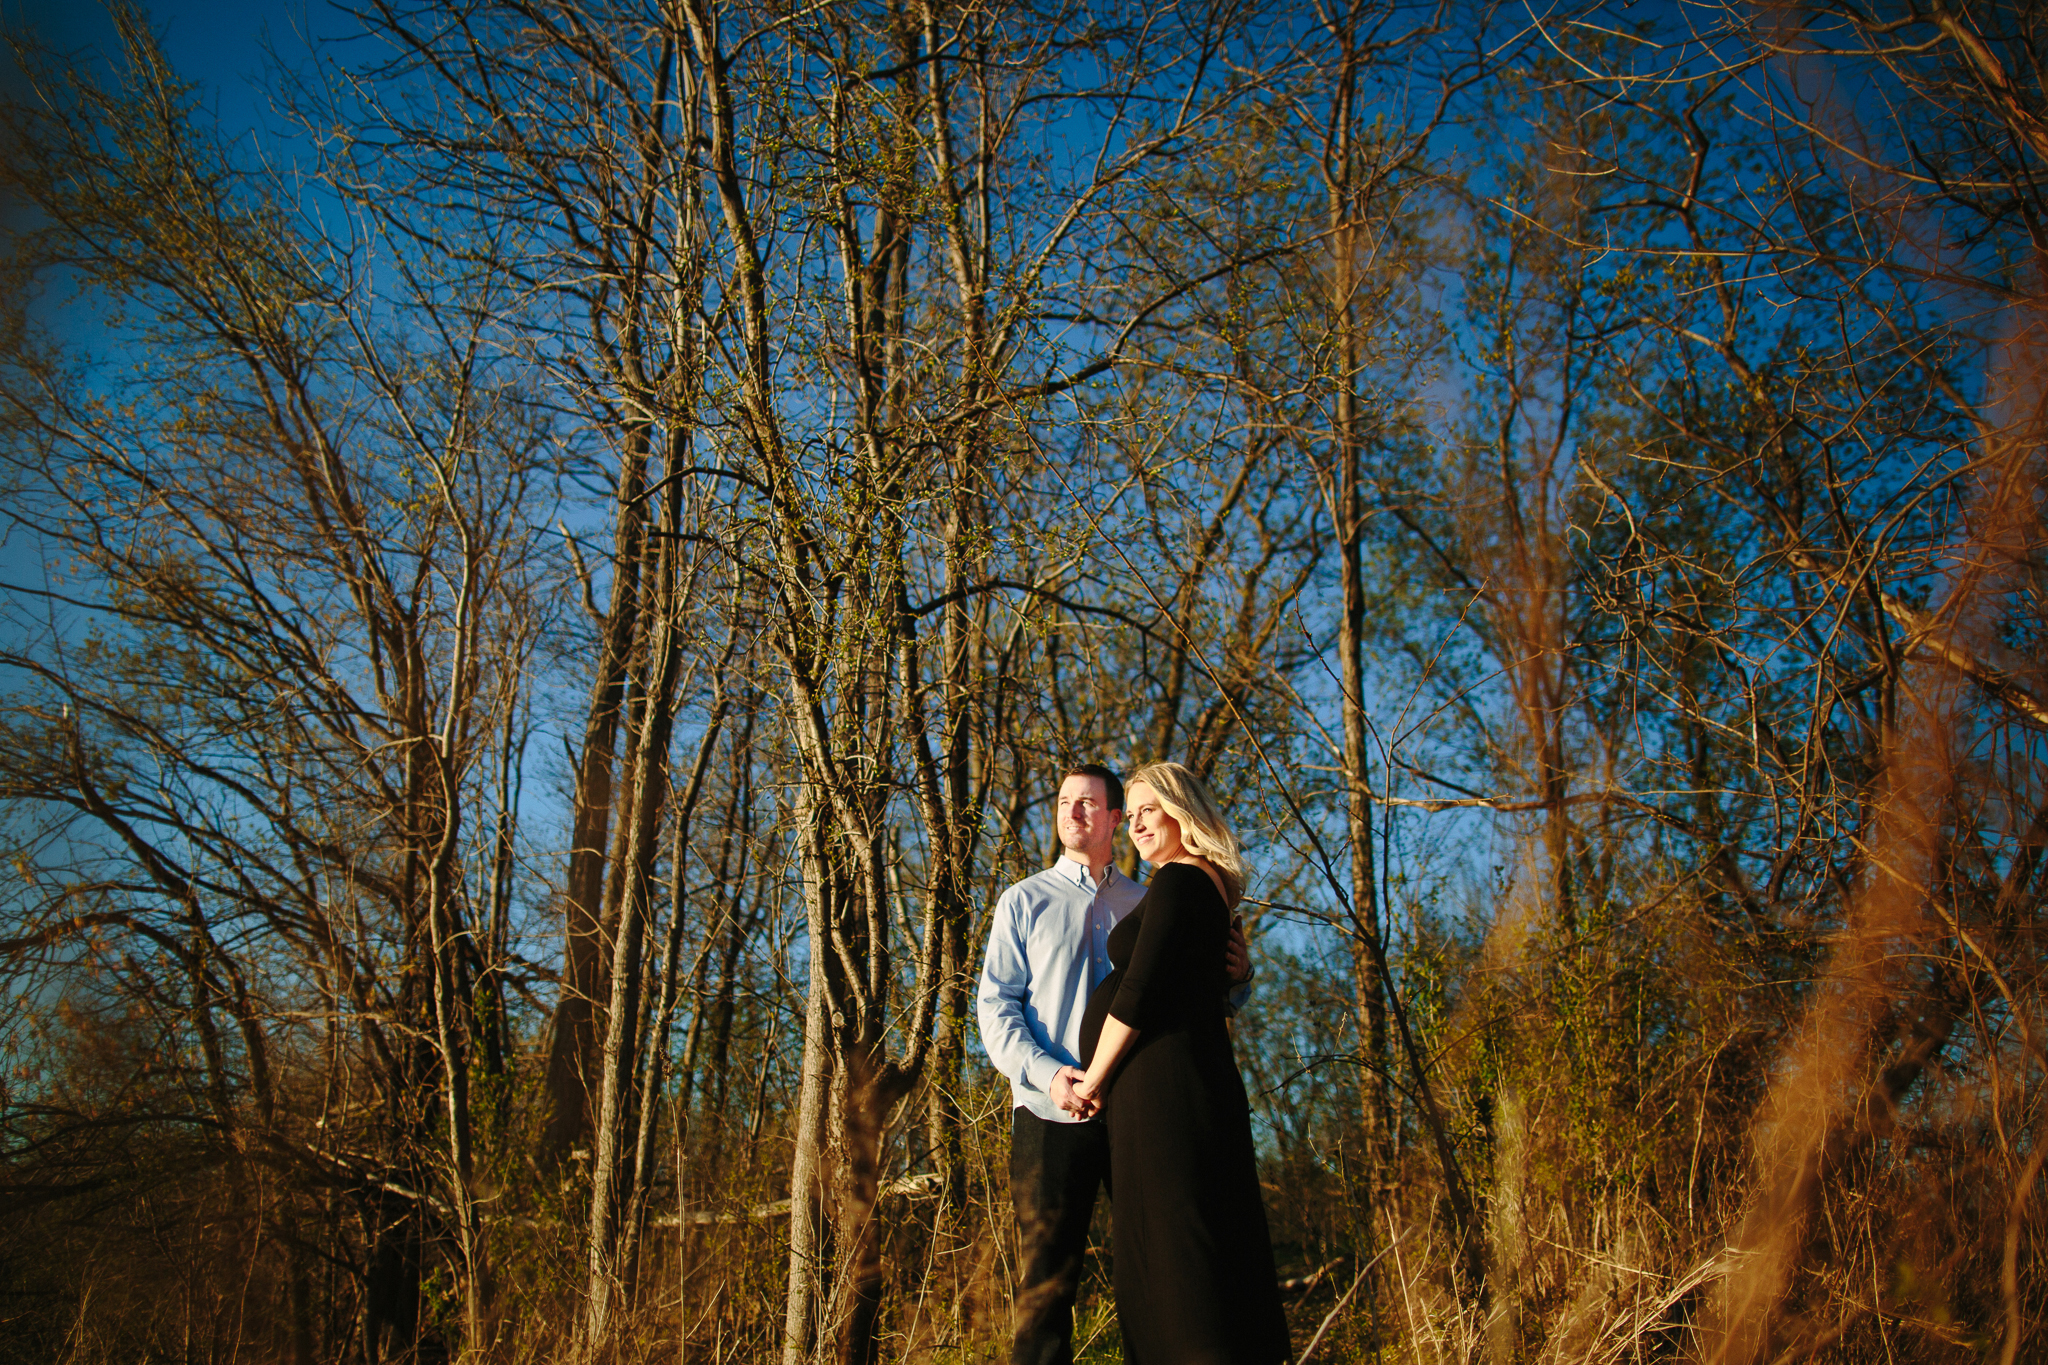 Summer Maternity Photos at Theo Wirth Park in Minneapolis